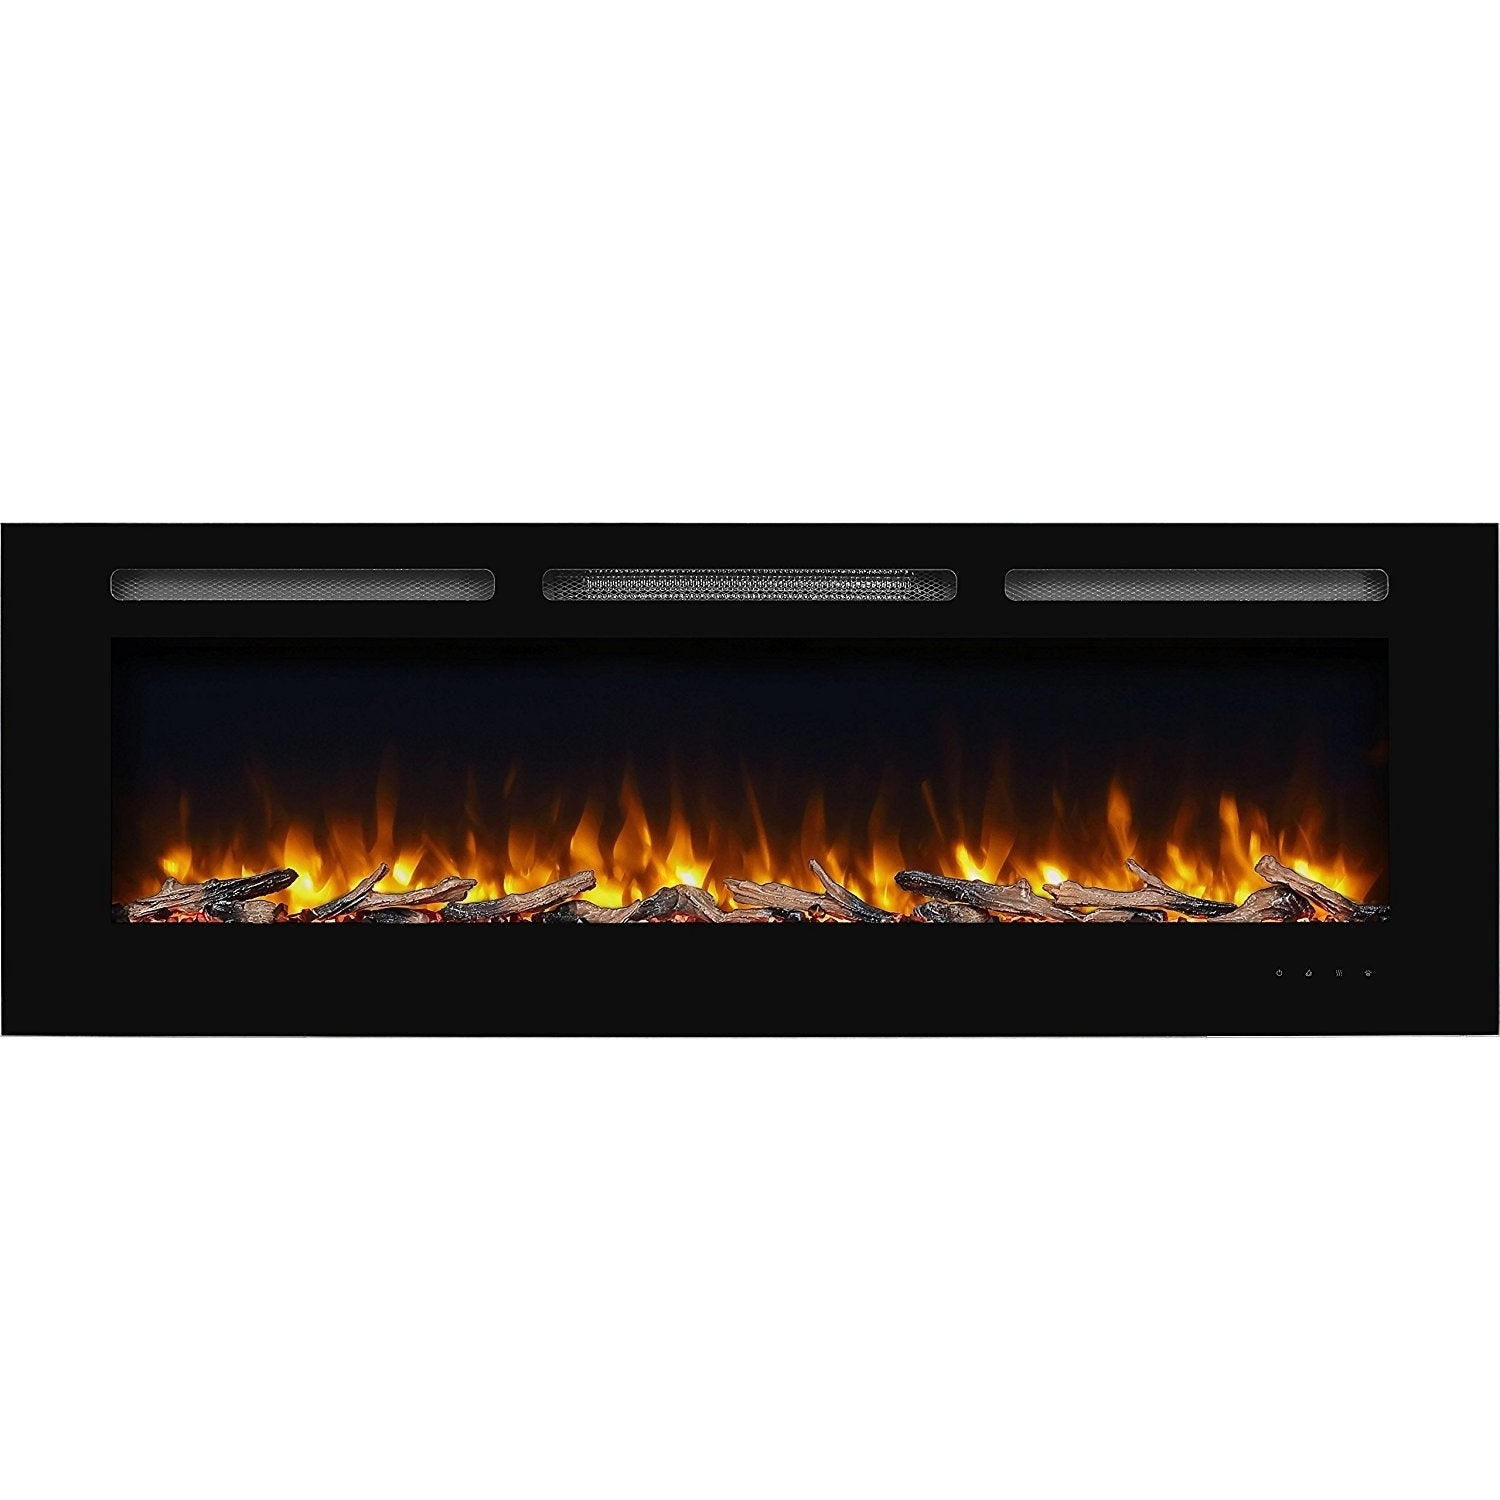 60 Alice In Wall Recessed Electric Fireplace 1500W Black b227a038 9965 4dc4 8466 a8c8daccace6